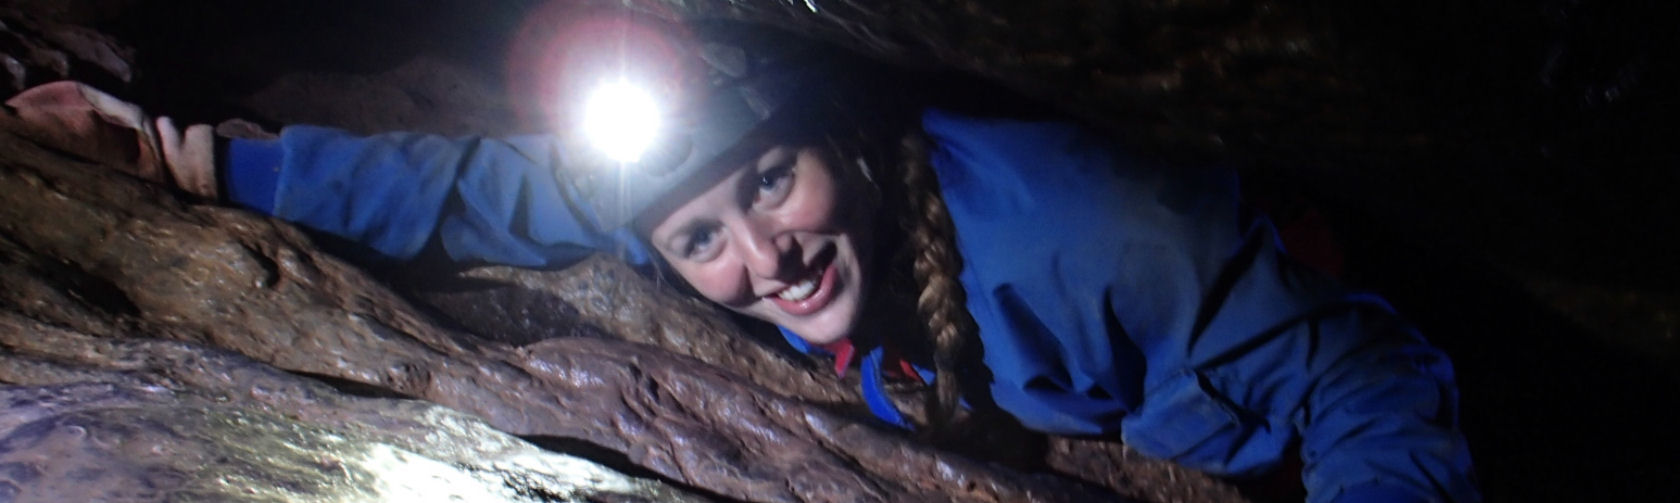 x-treme Adventure Caving in Cheddar Somerset